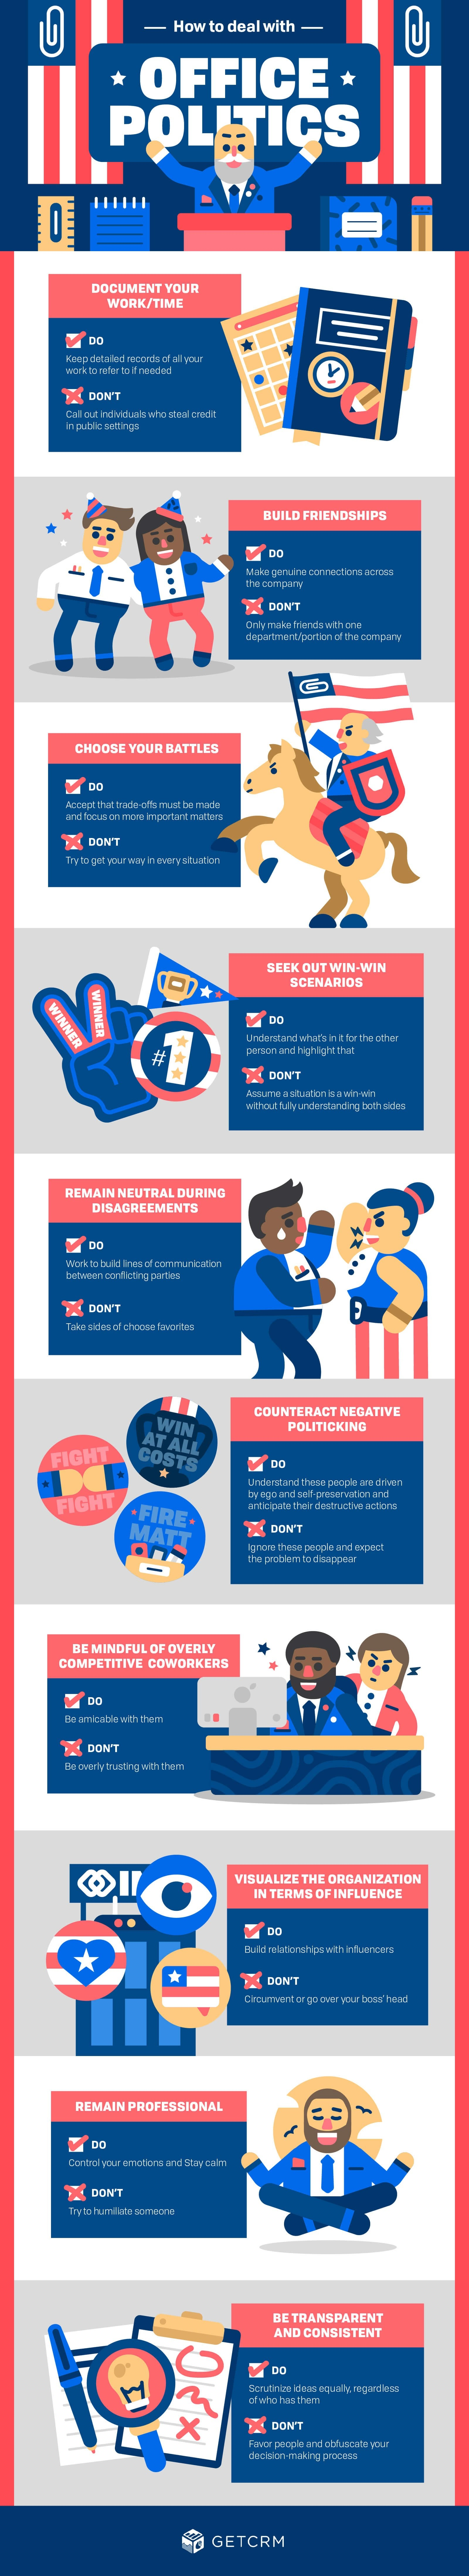 How to Deal with Office Politics - #infographic